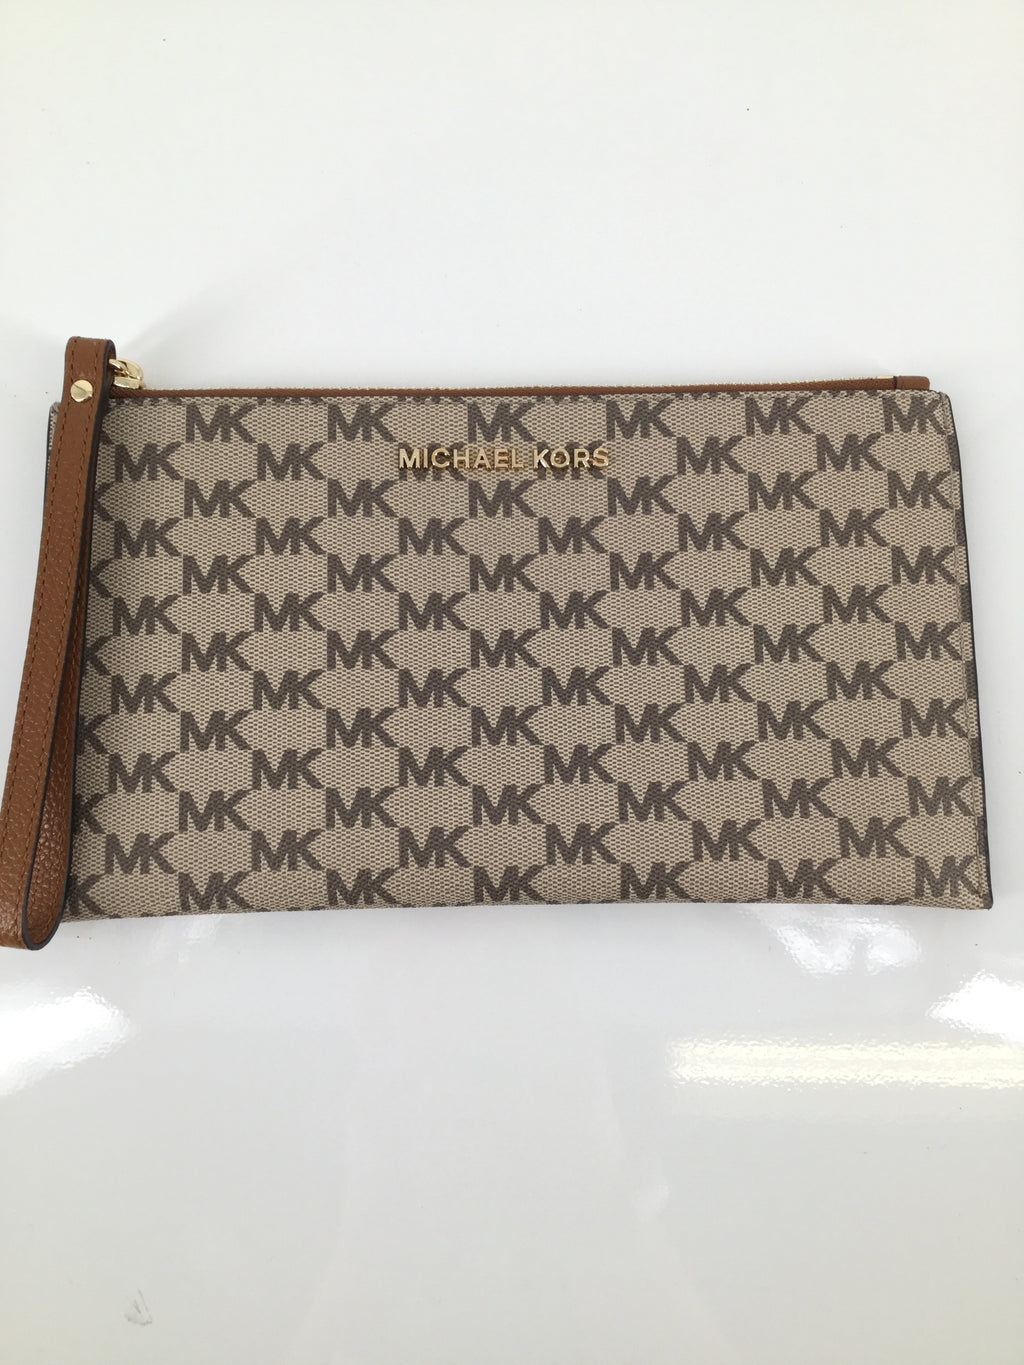 MICHAEL BY MICHAEL KORS CLUTCH